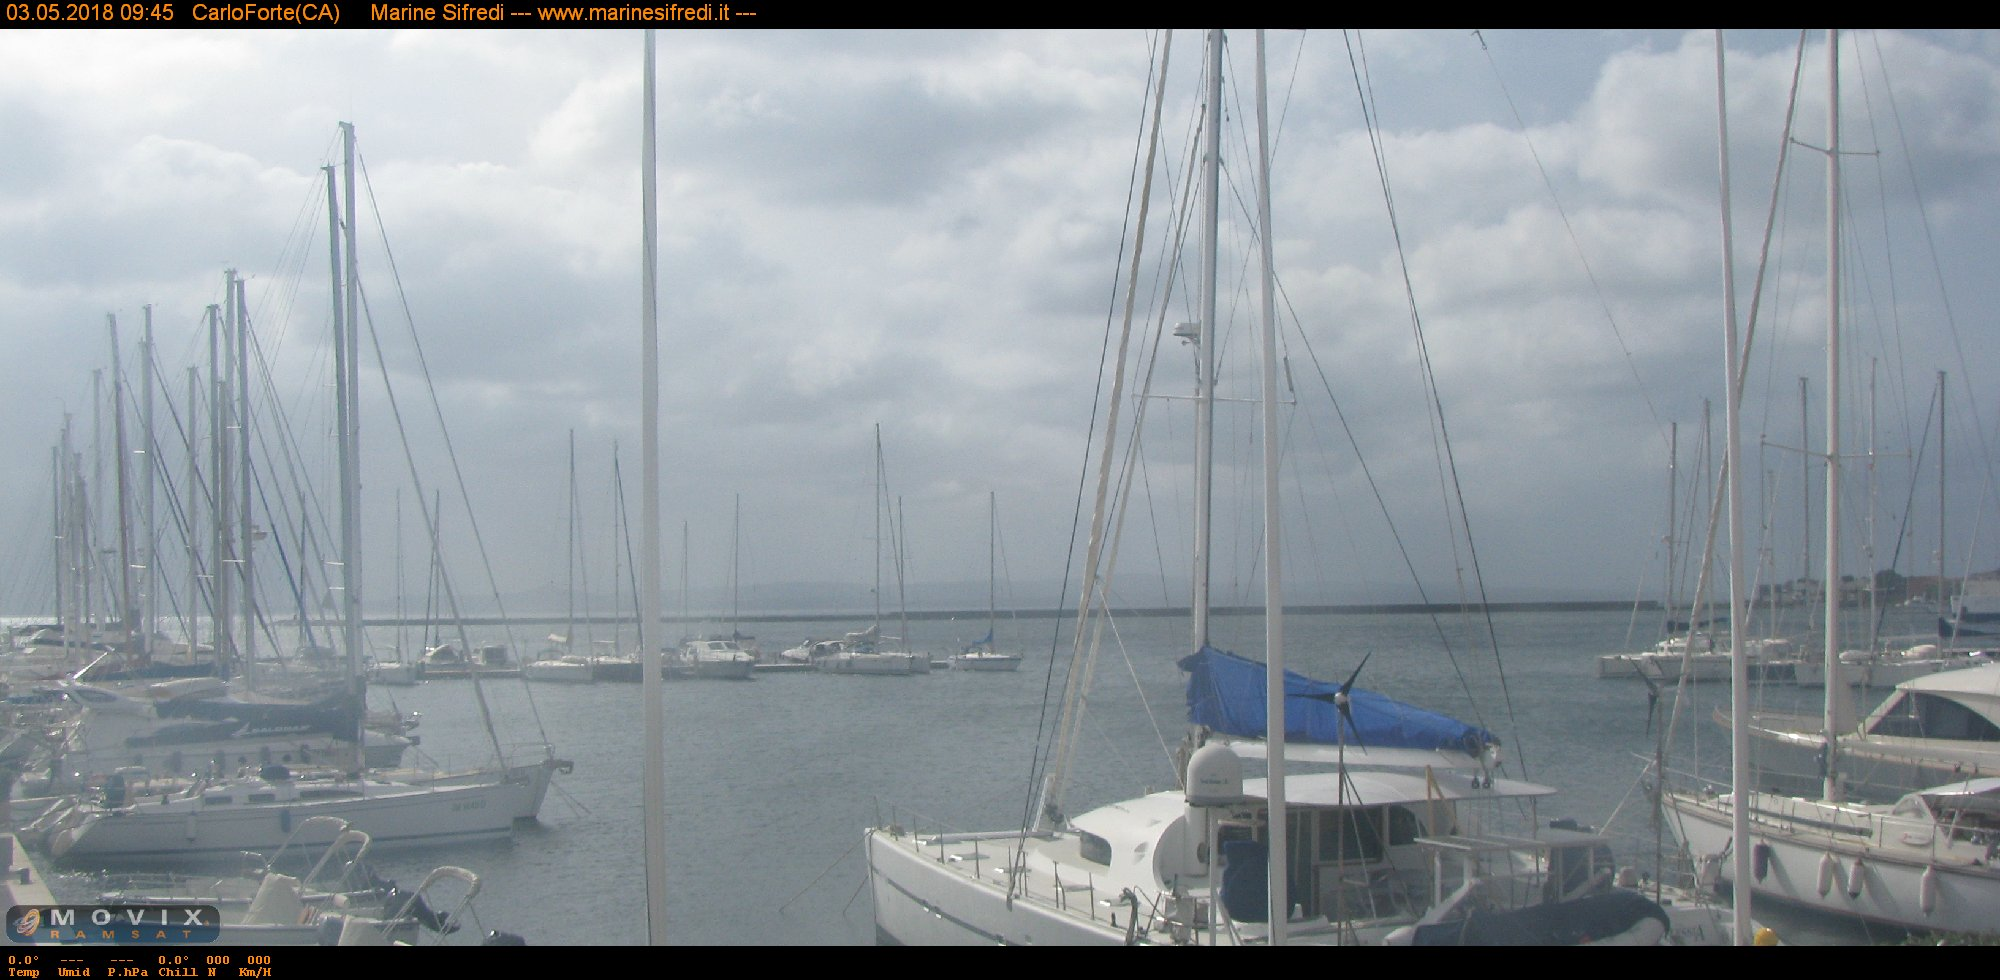 Webcam Carloforte Marina